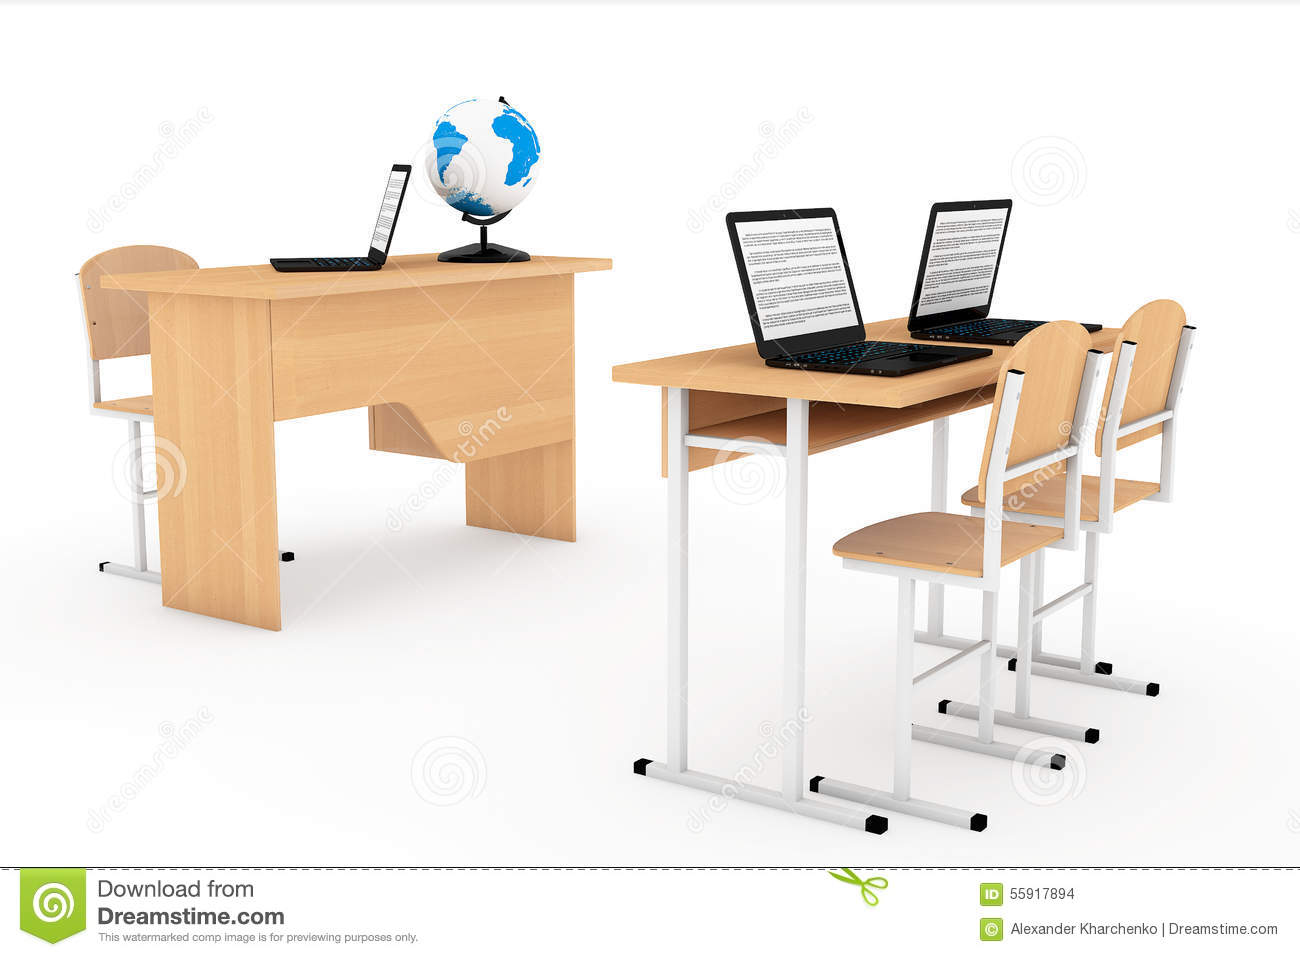 Modern Concept Of Classroom Management ~ Modern classroom concept school desks with laptops in